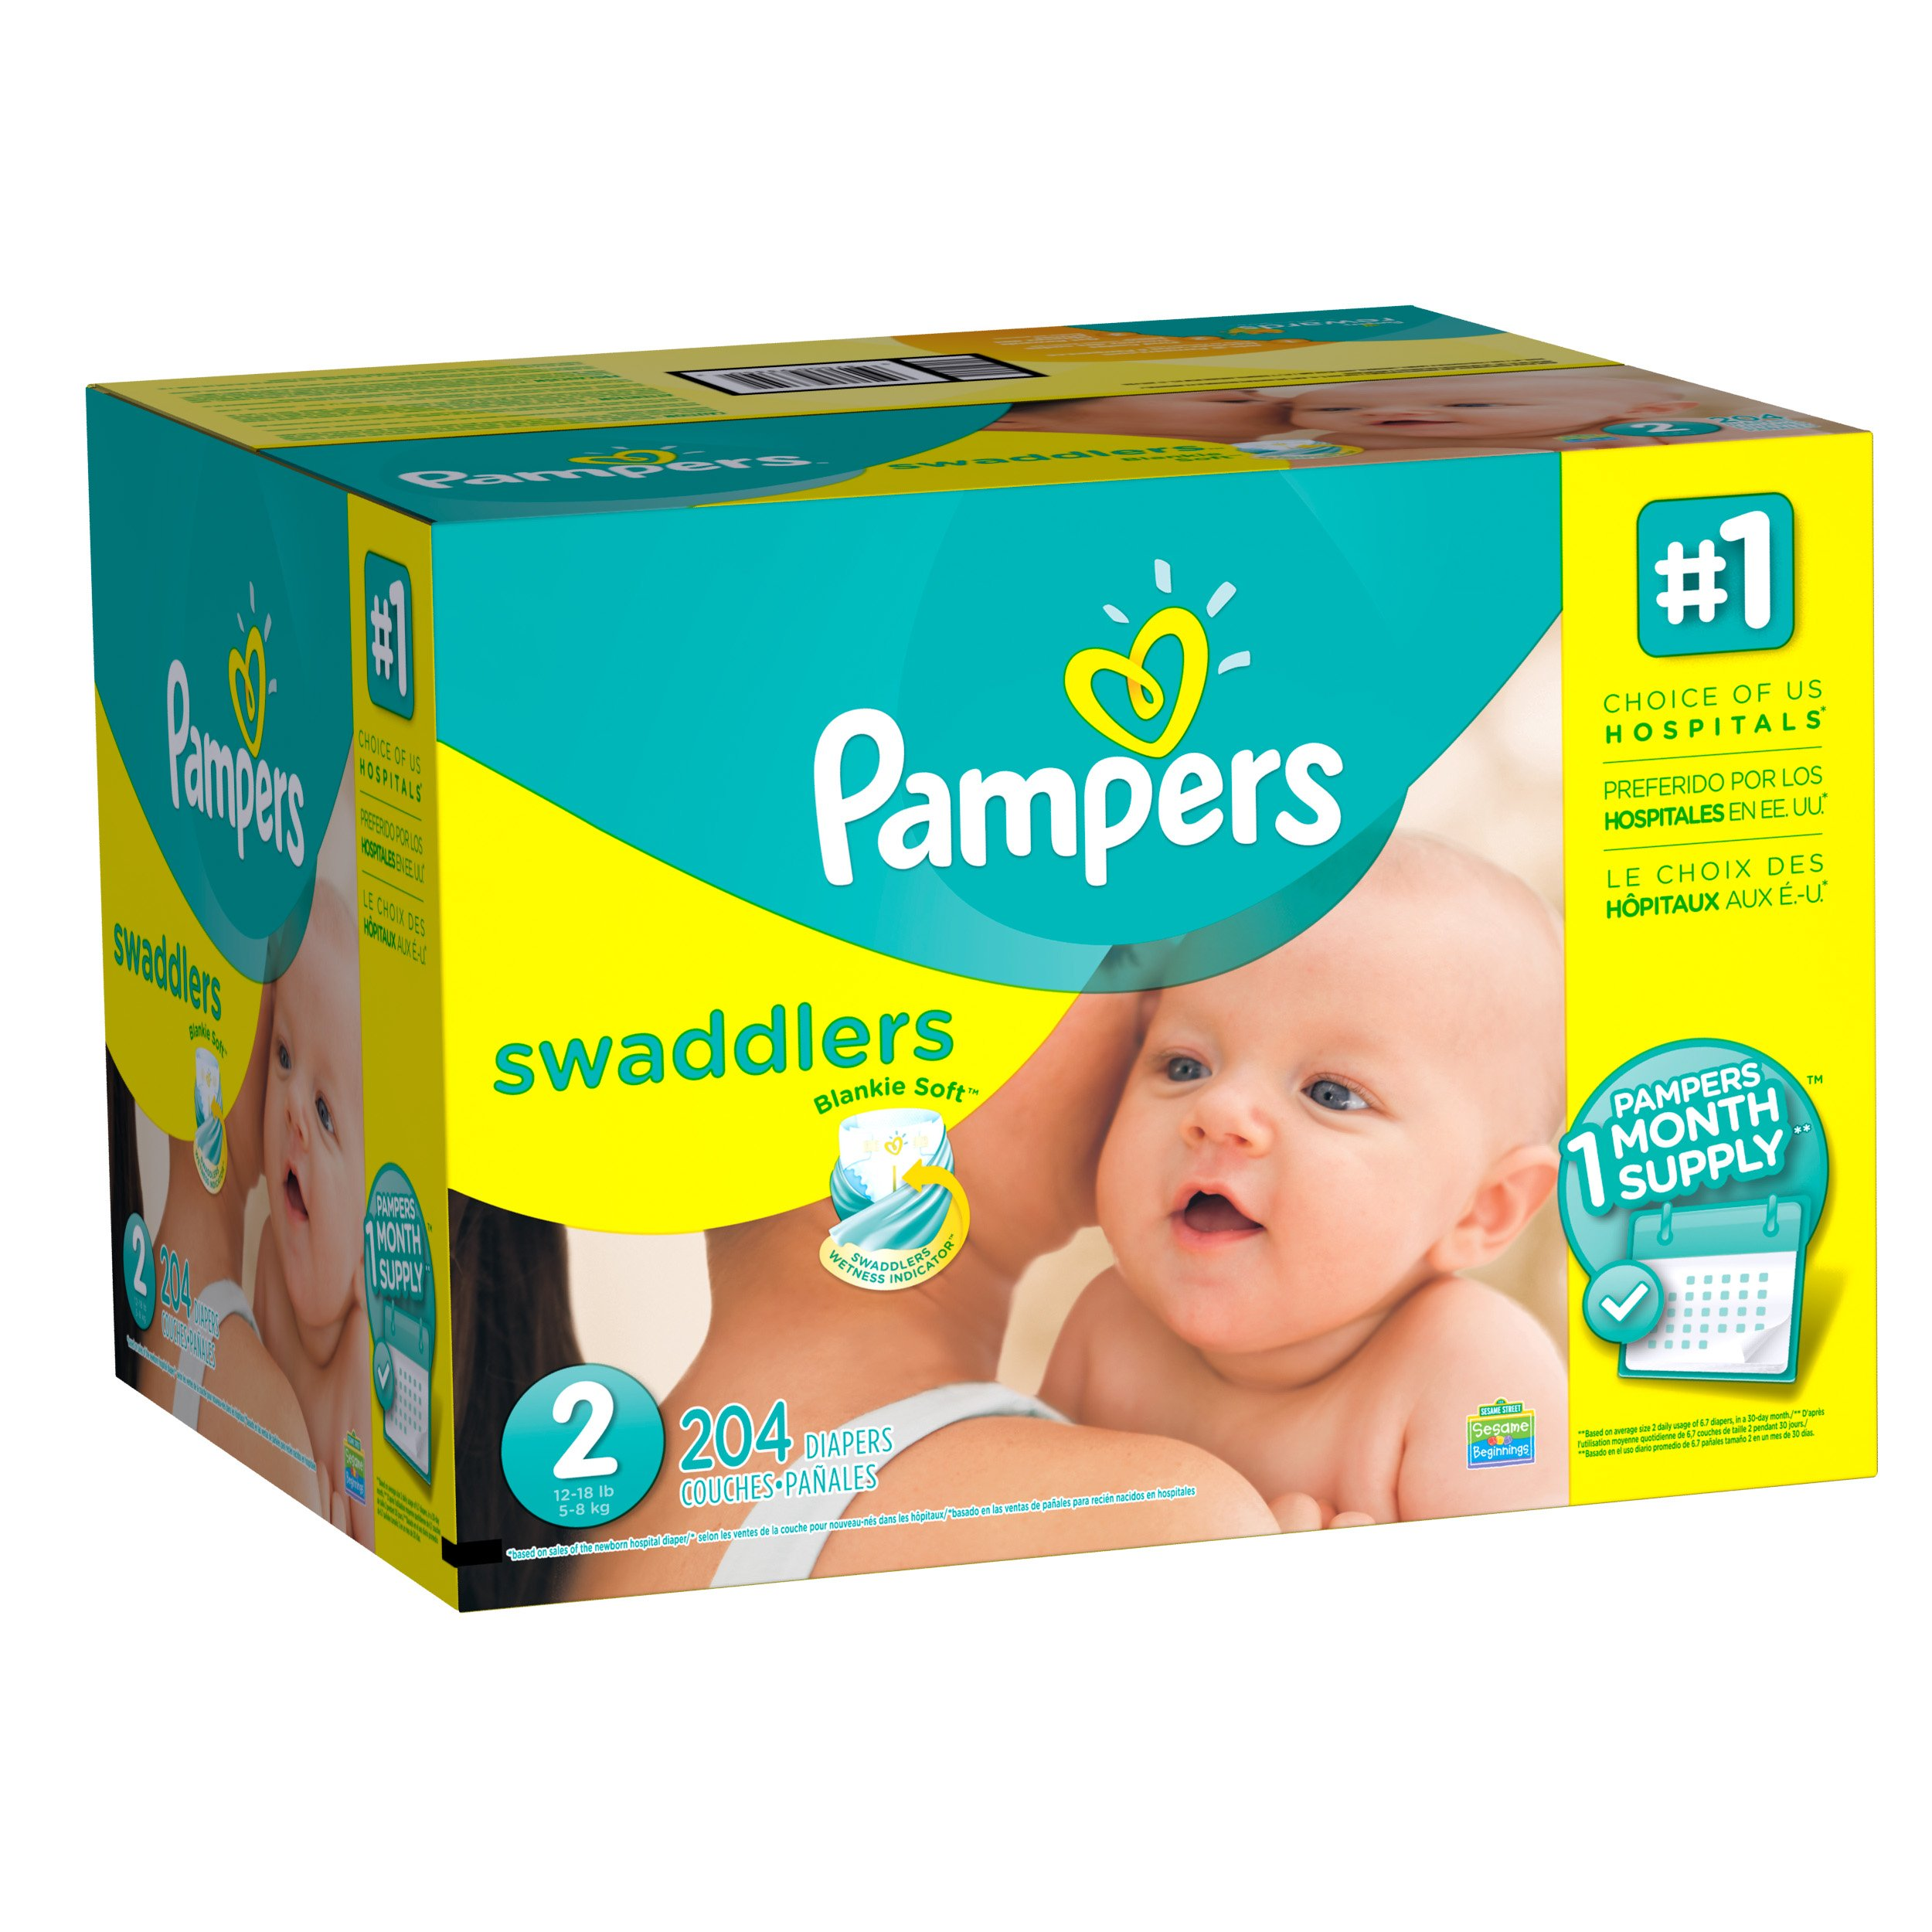 pampers swaddlers Diapers size 2 by Pampers